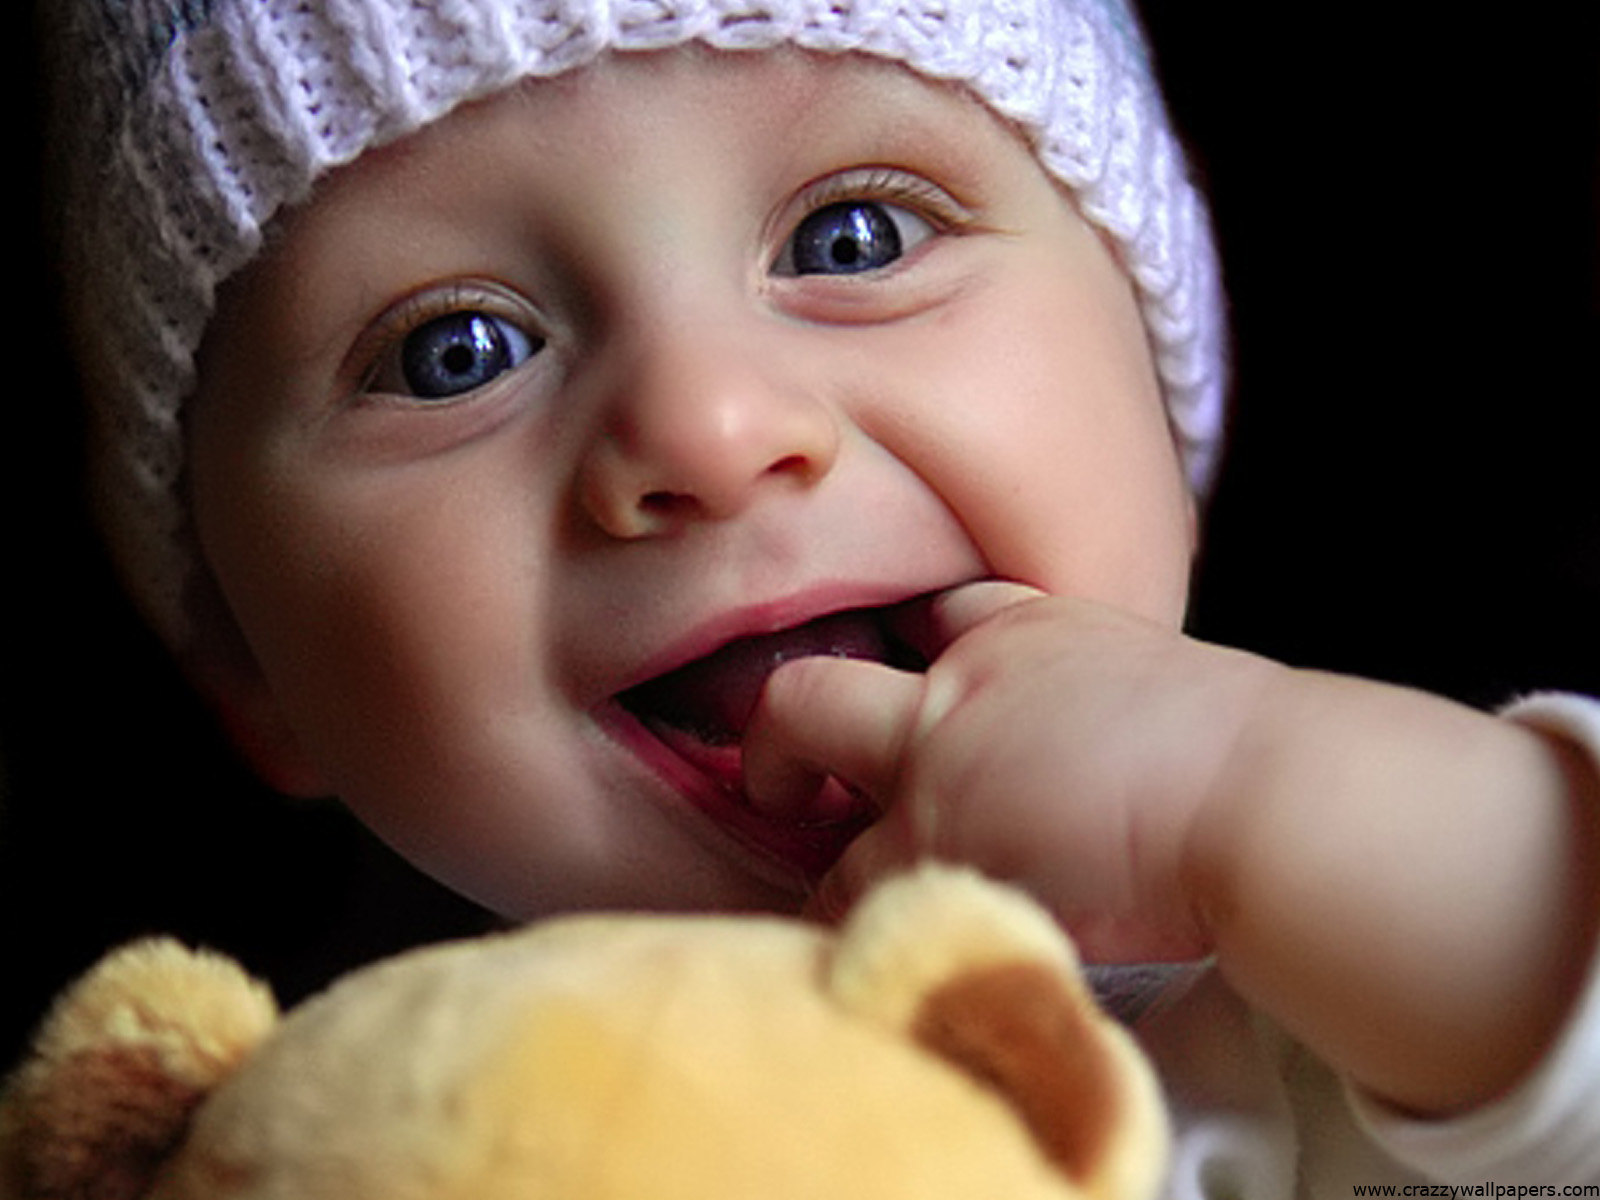 Hd wallpaper doll - Cute Baby Playing Doll Wallpapers Hd Wallpapers